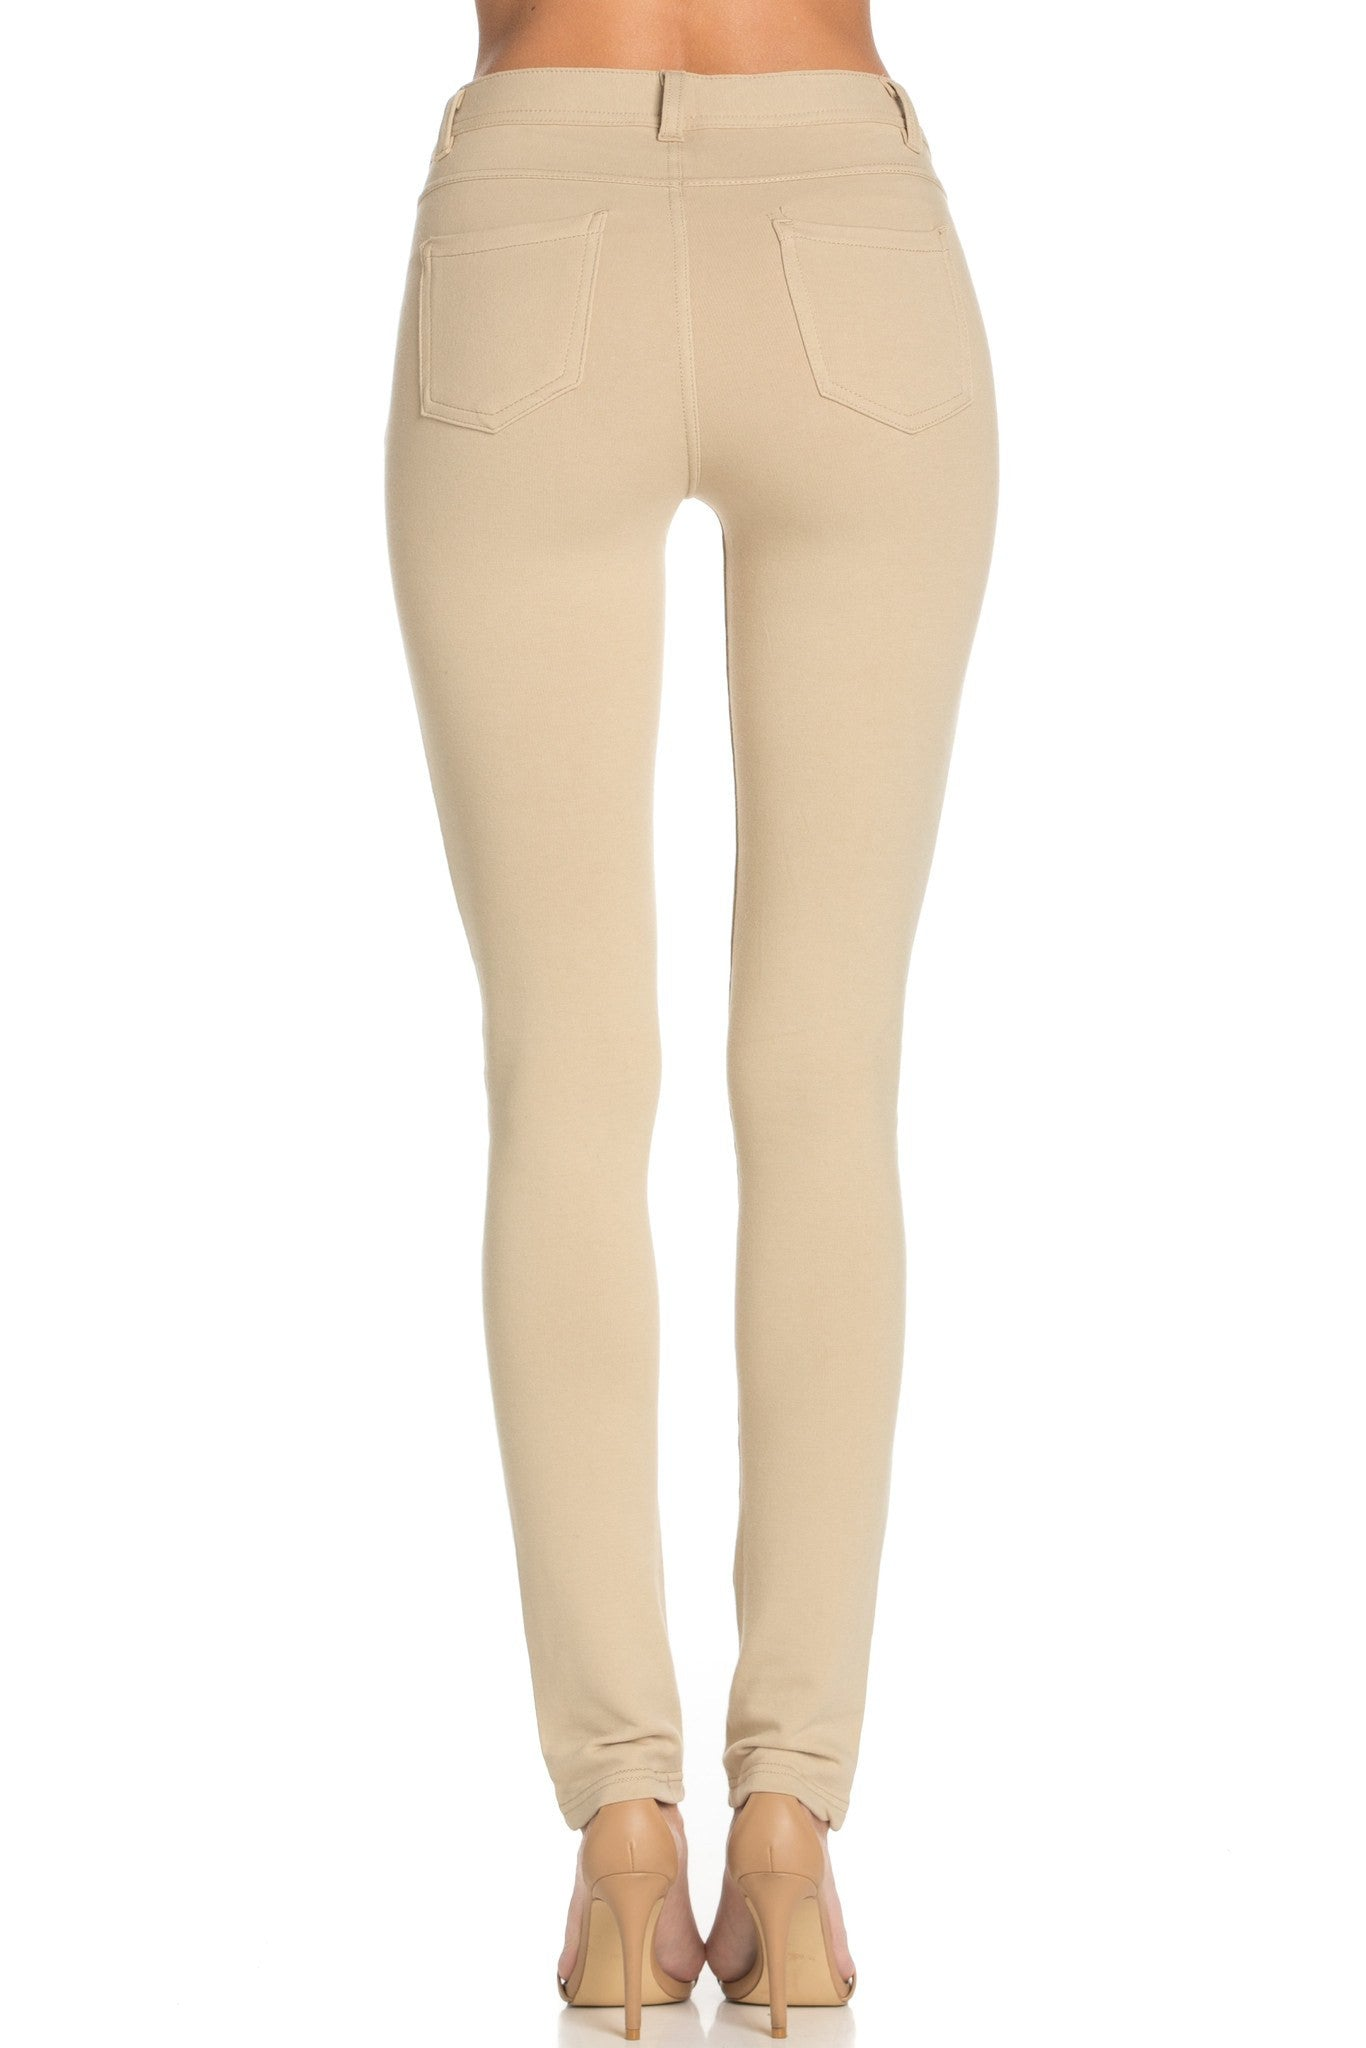 Stretch Skinny Knit Jegging Pants (Khaki) - Poplooks